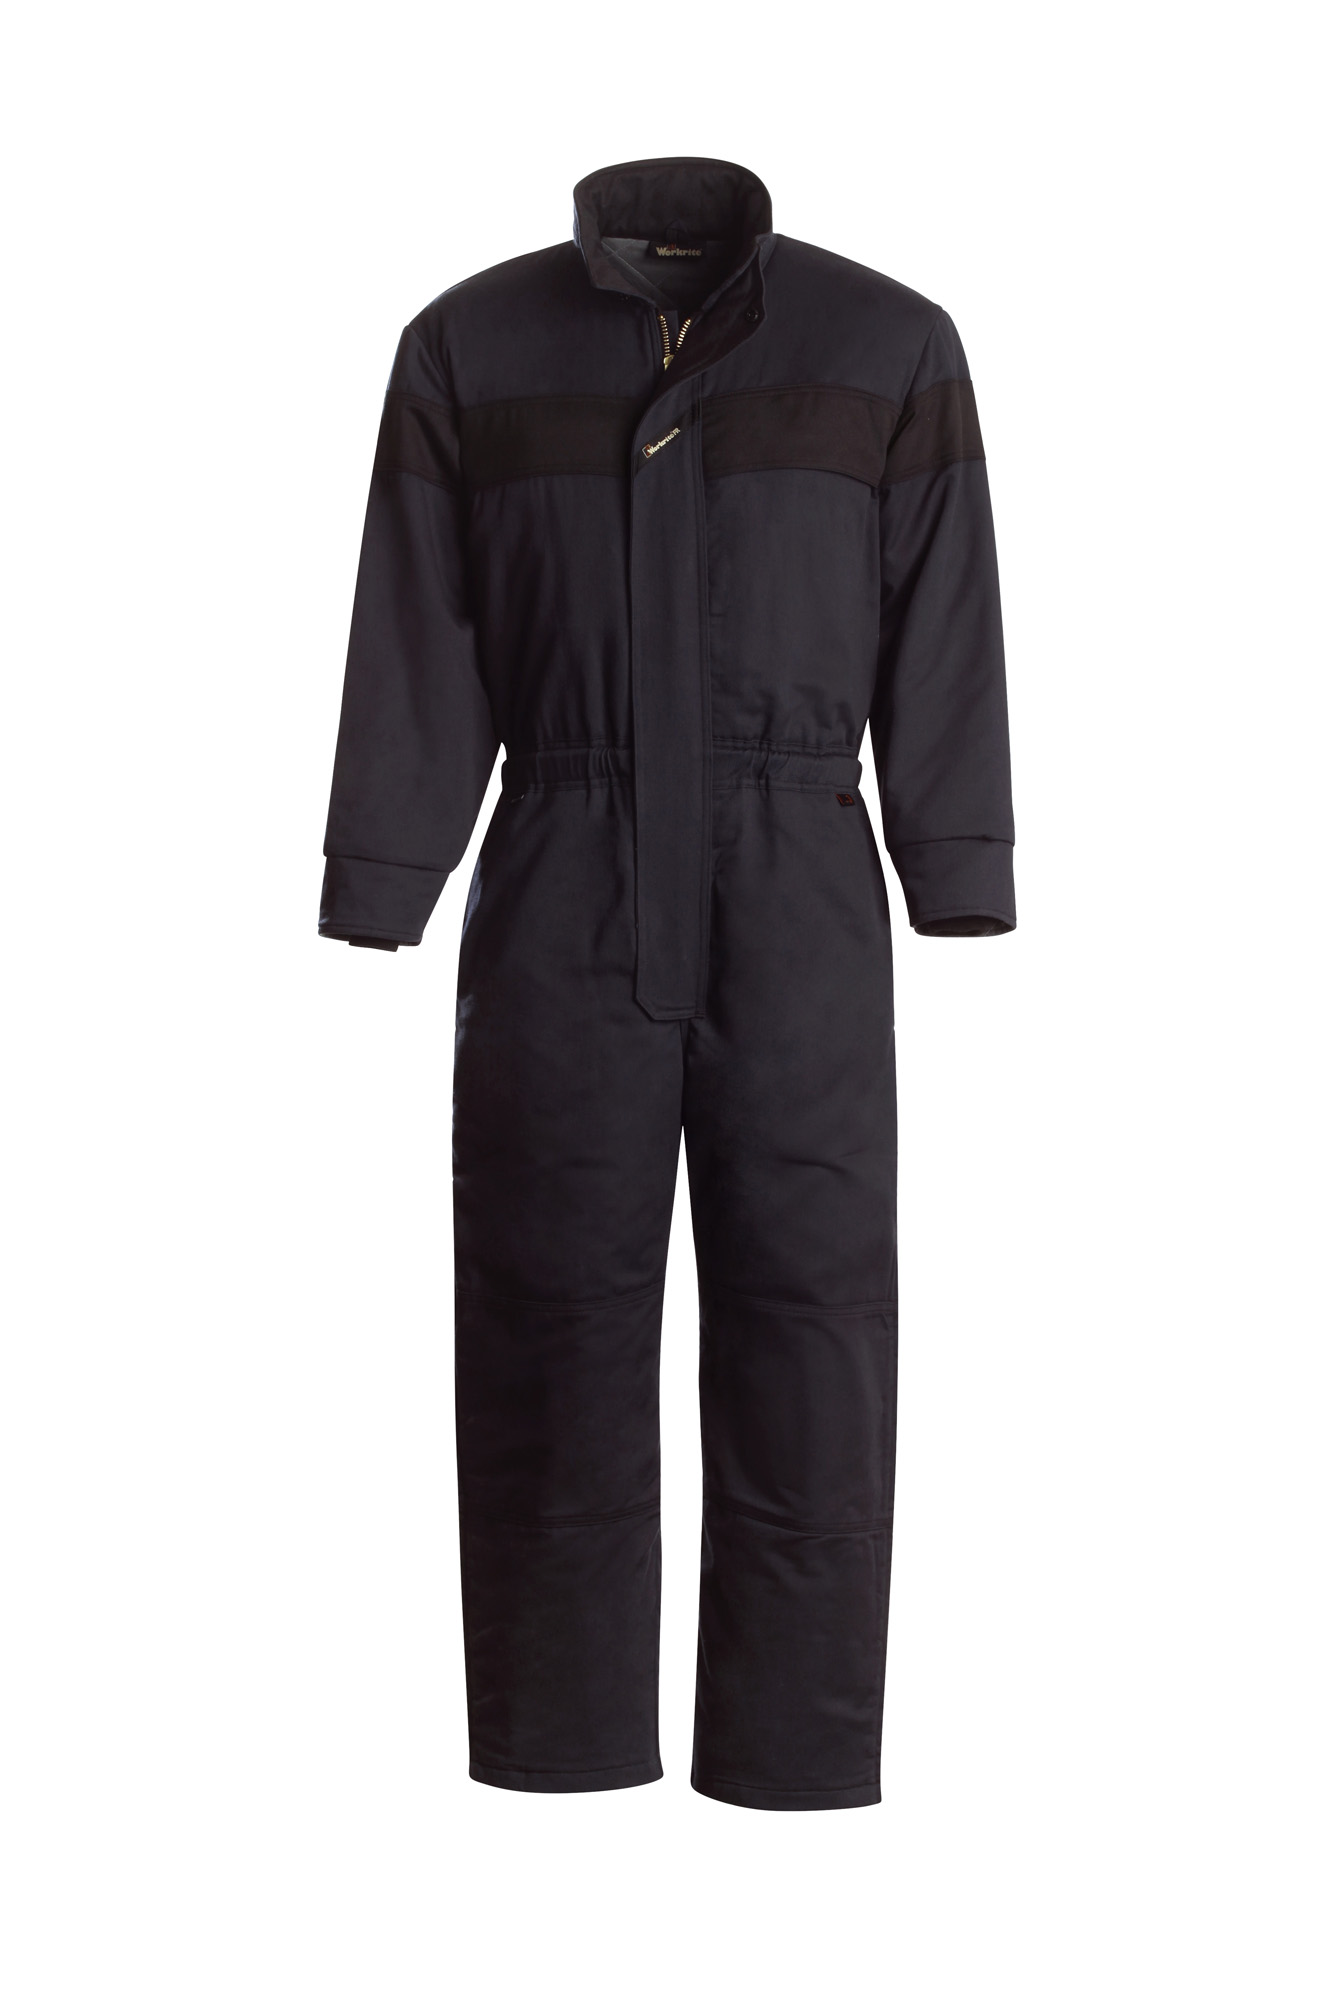 92284b08e563 Workrite Uniform Co. - Workrite 7 oz Ultrasoft Insulated Coverall ...